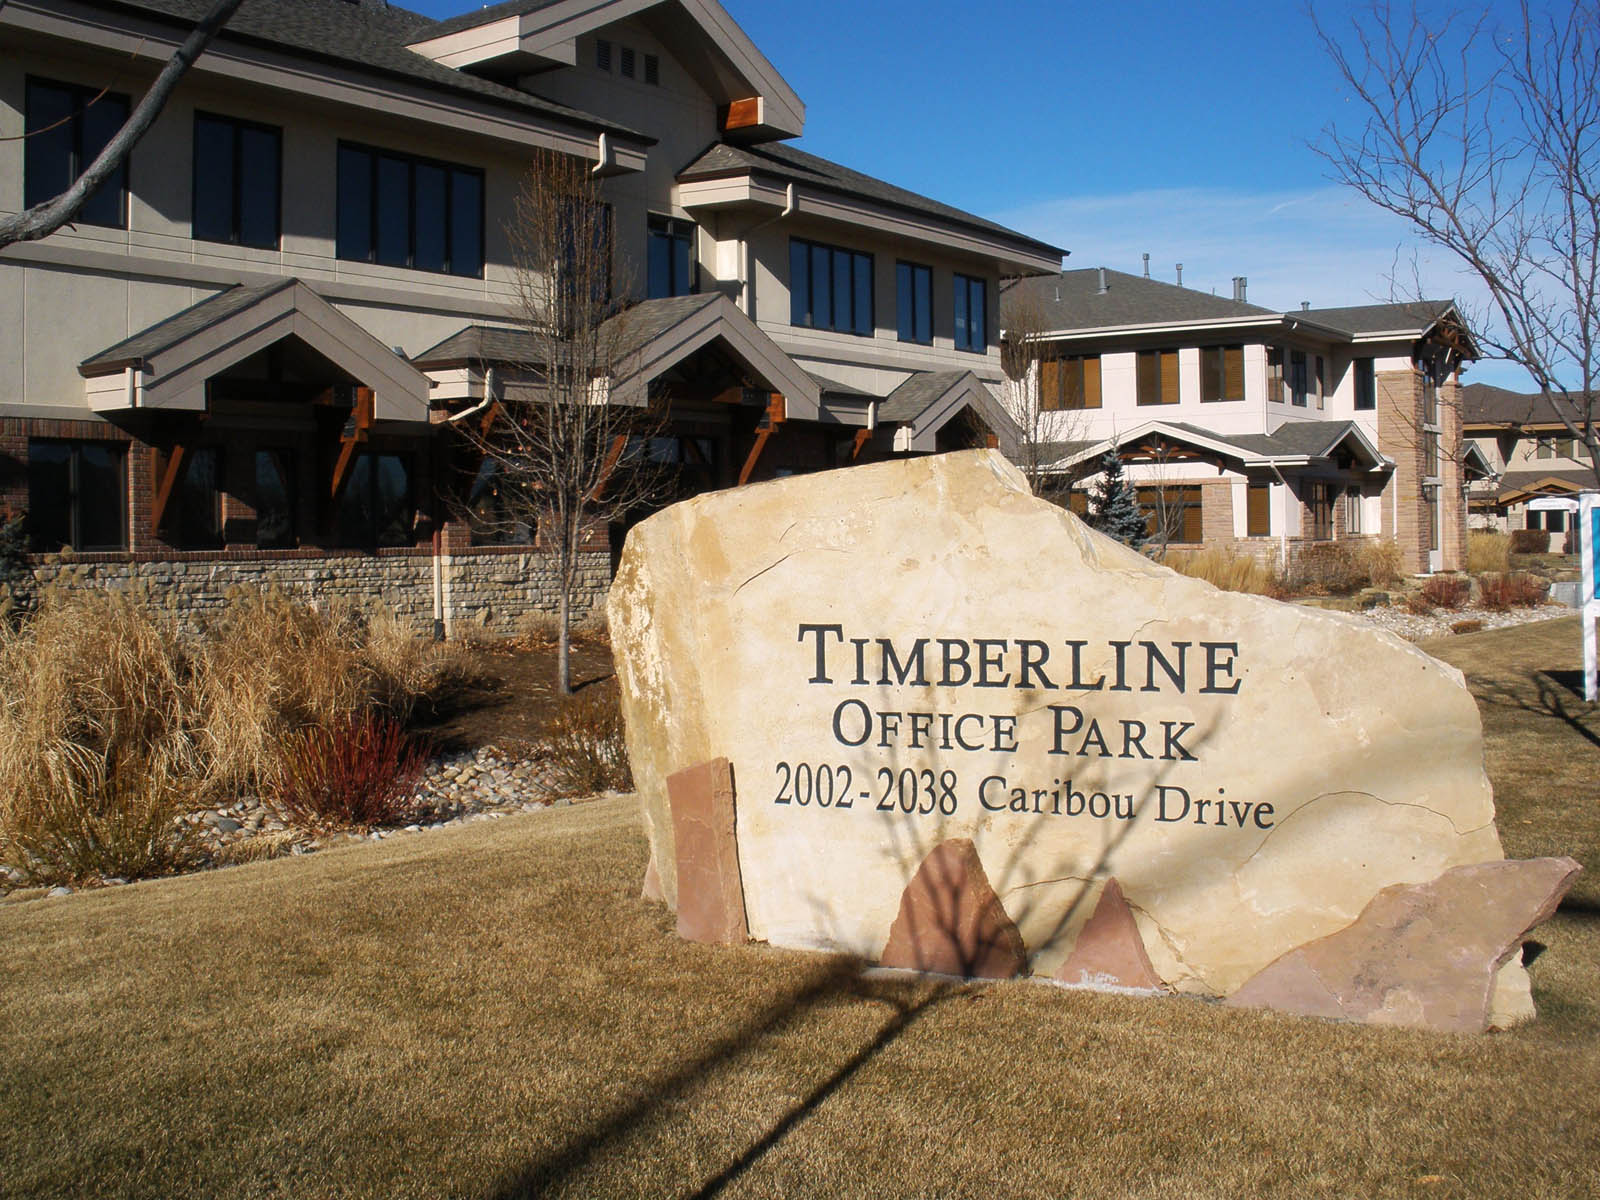 Timberline Office Park entry